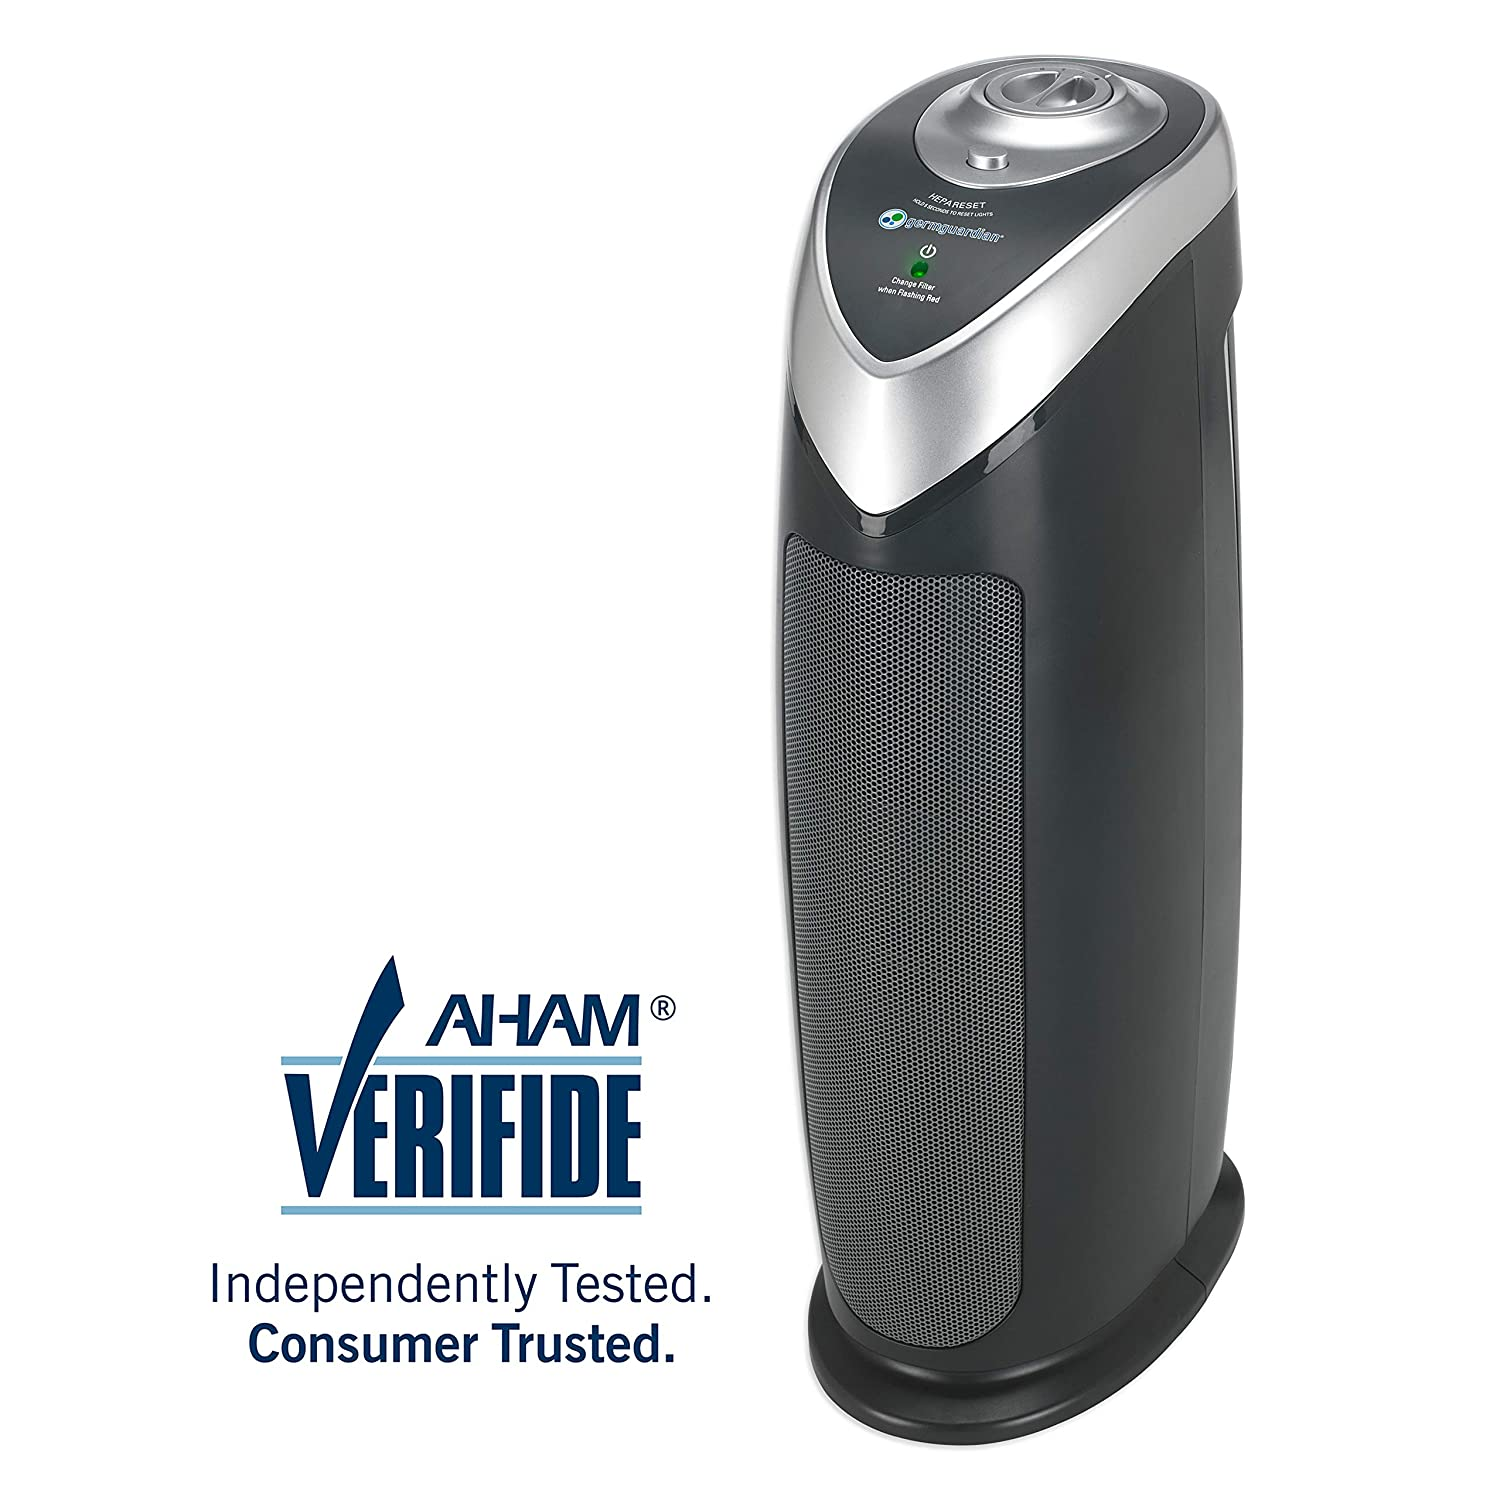 Germ Guardian AC4820 22 True HEPA, Full Room, Allergies, Smoke, Dust, Pet Dander, Odors, 3-Yr Wty, GermGuardian, Grey Filter Air Purifier for Home